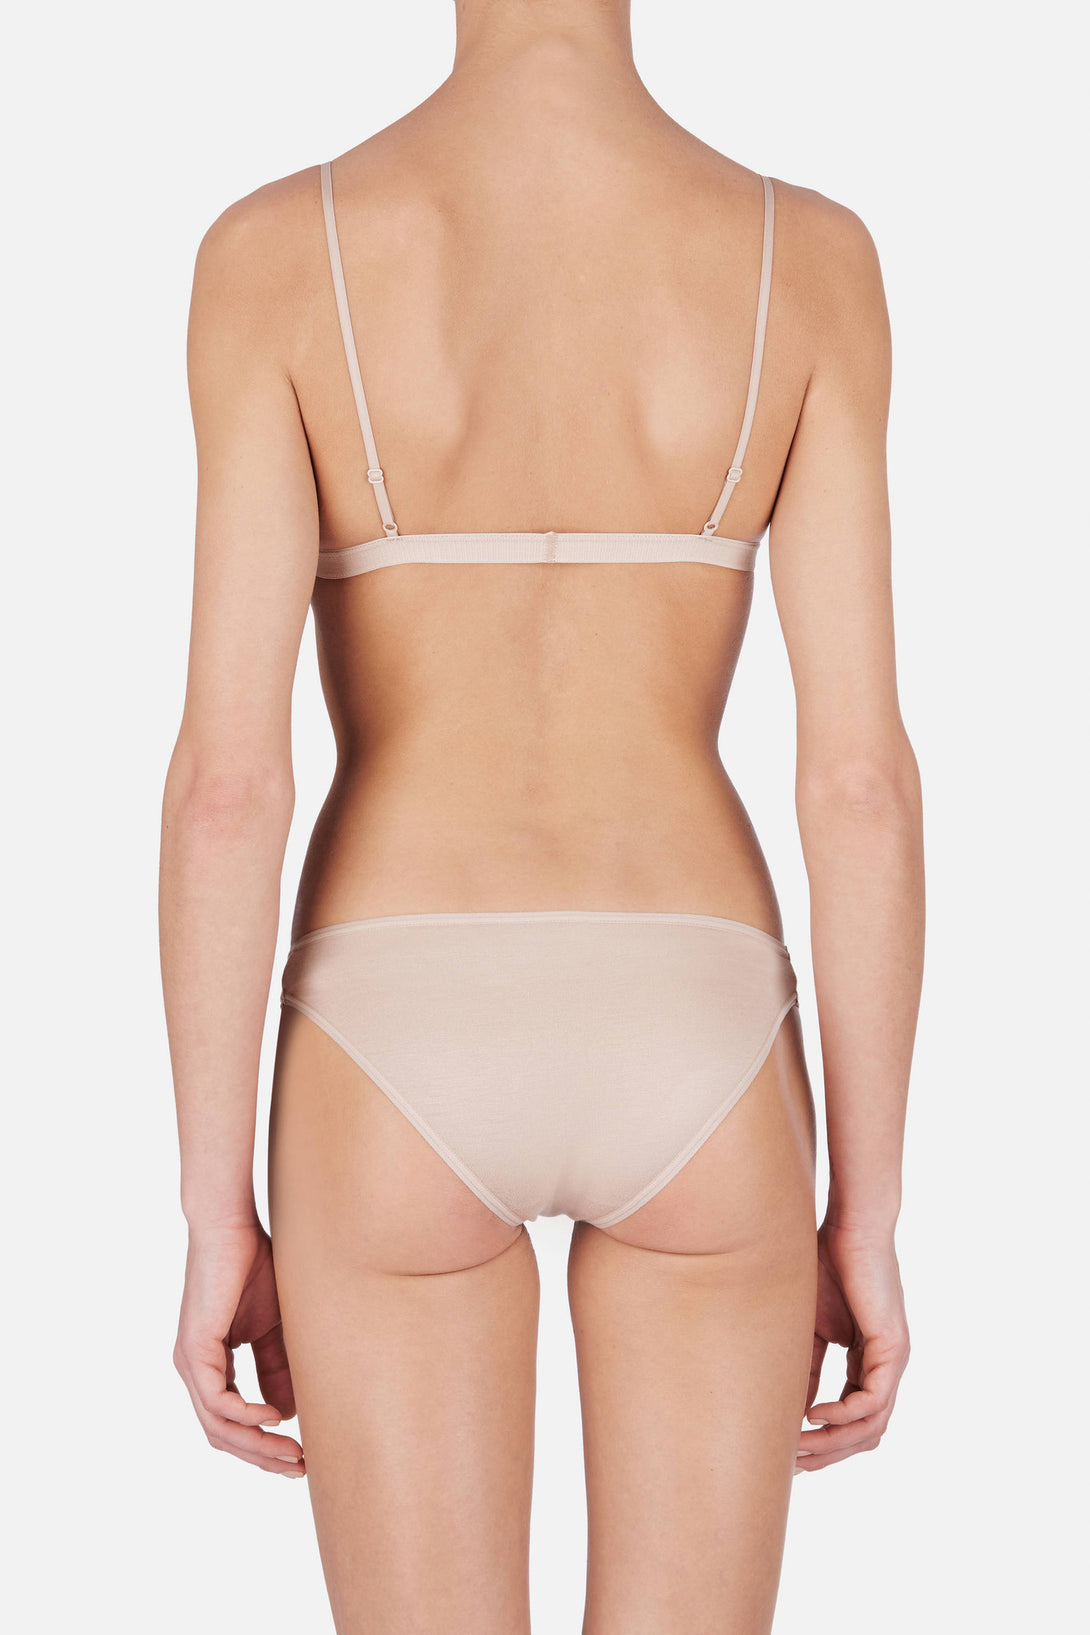 436d9195d0ea Mississippi Triangle Bra - Nude – The Line